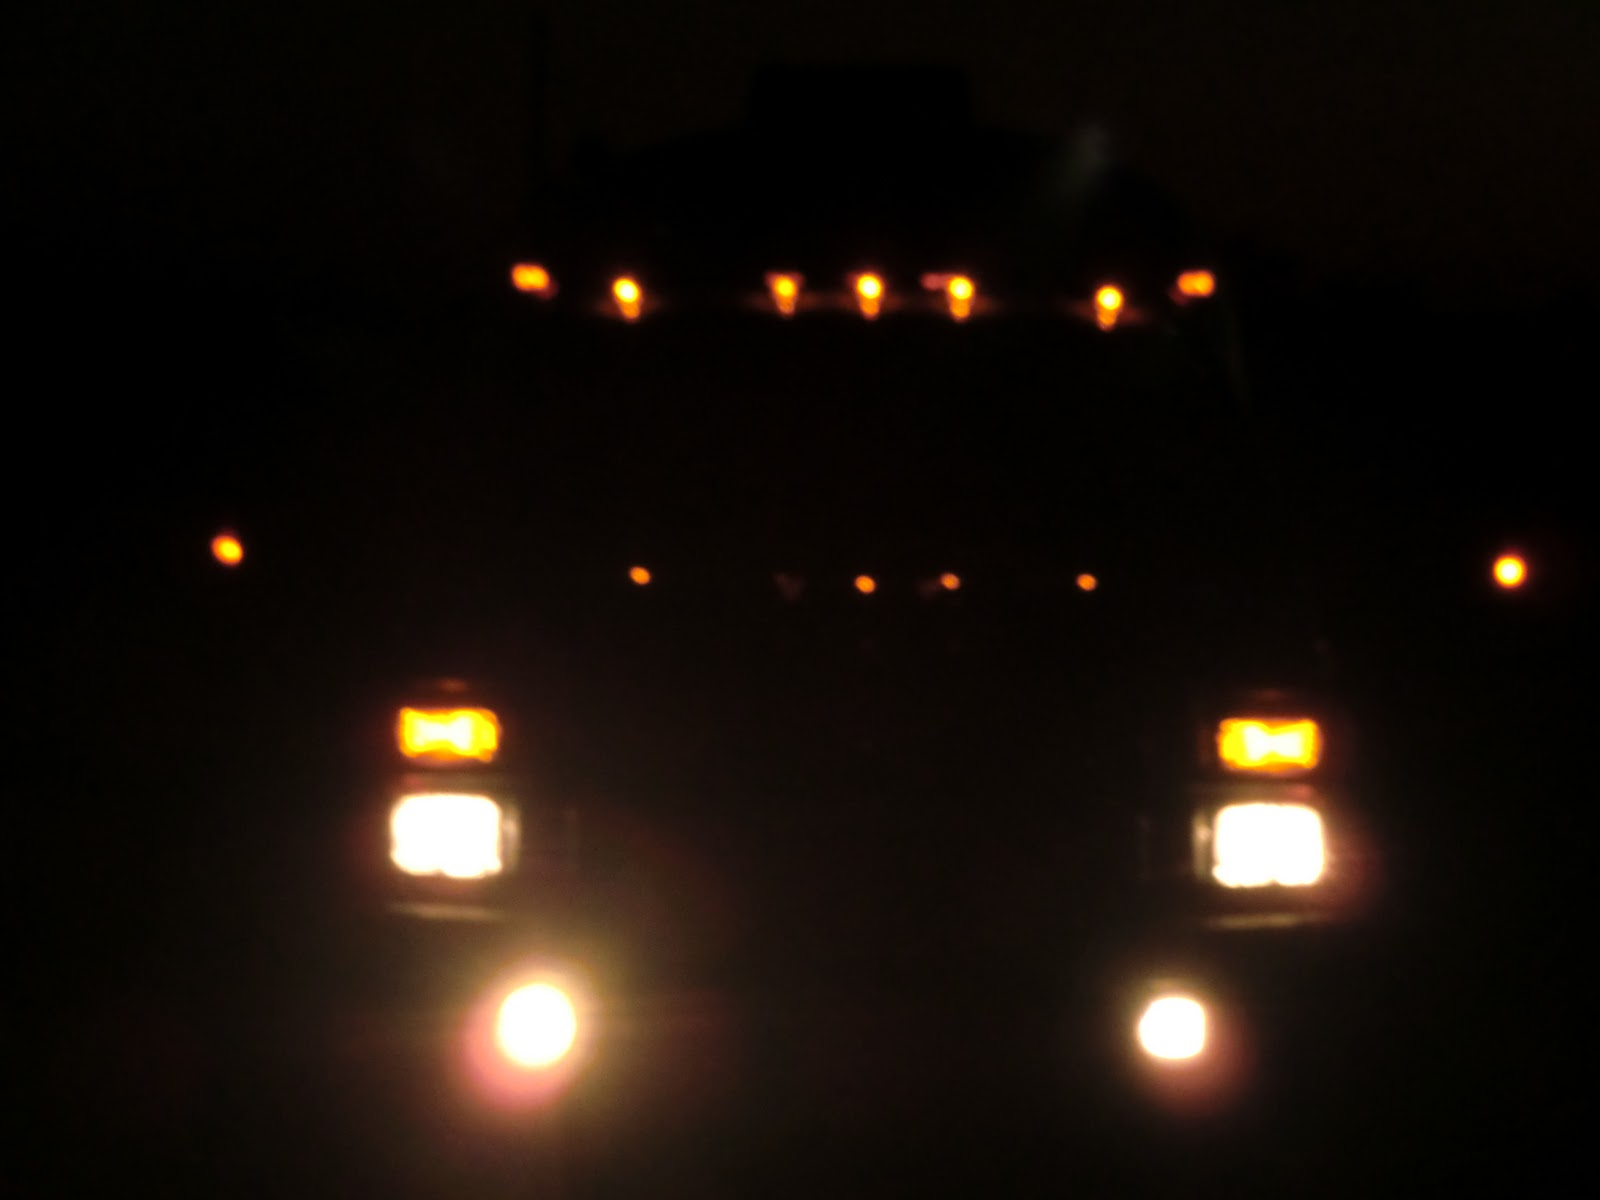 lights on a truck at night